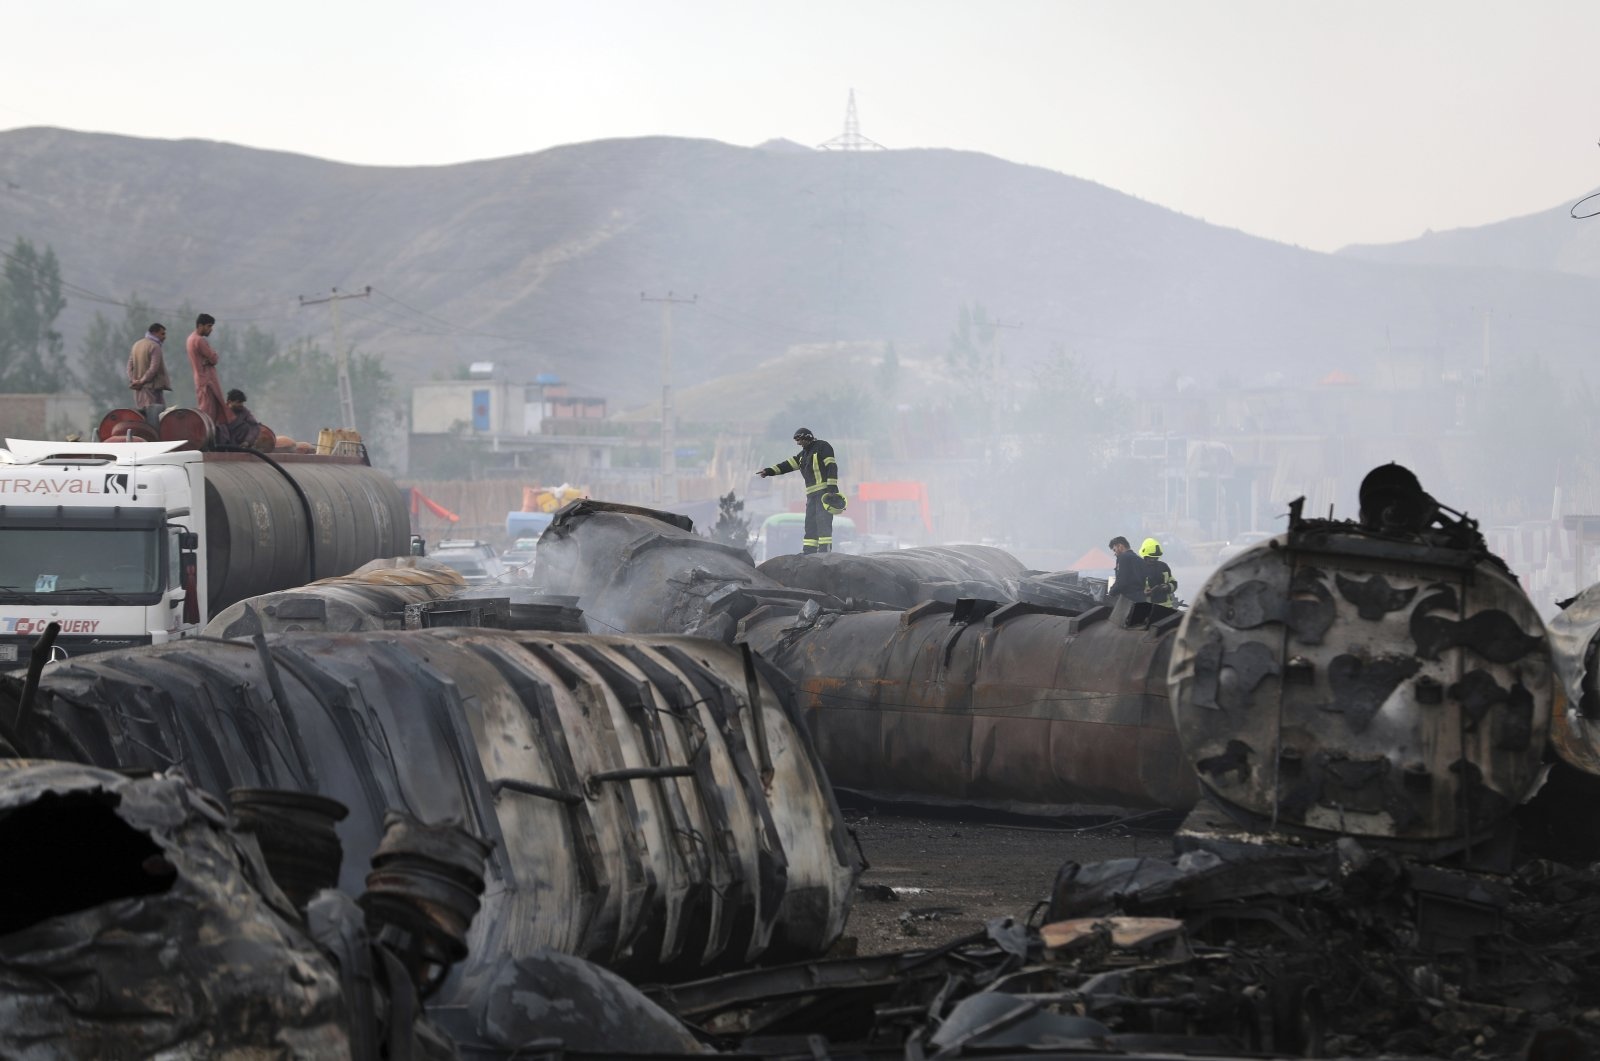 Firefighters work to extinguish a burning fuel tanker in Kabul, Afghanistan, Sunday, May 2, 2021. (AP Photo)